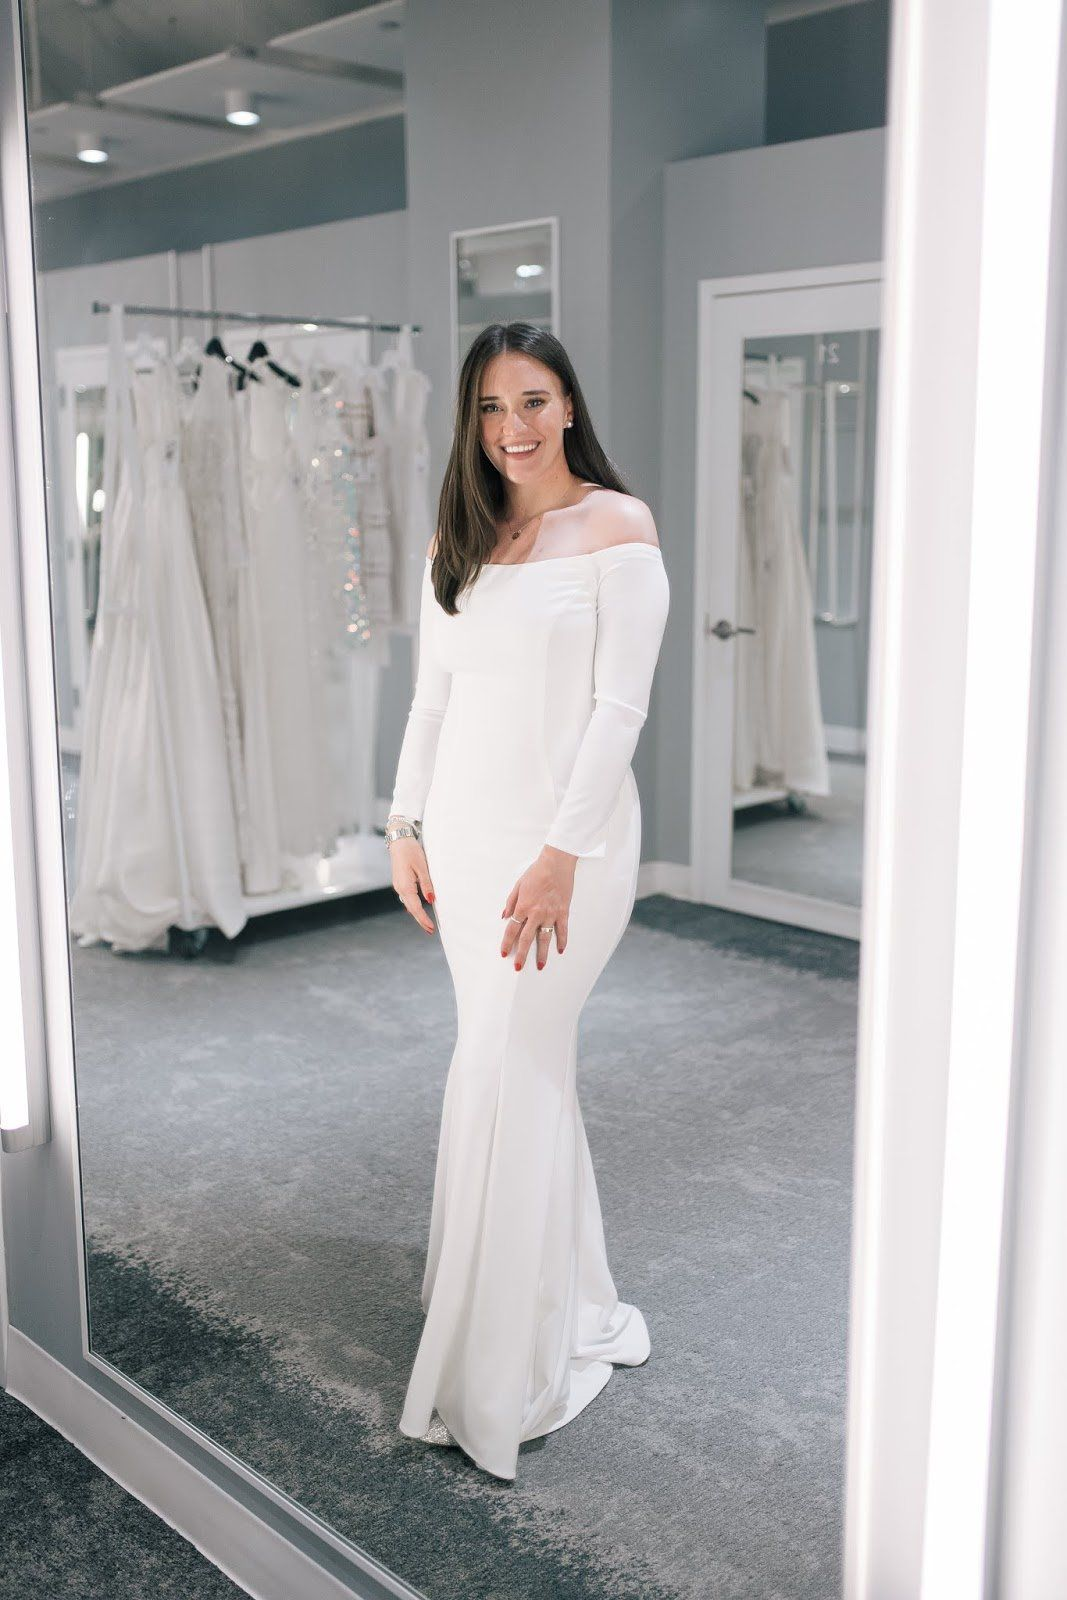 Second Dress Shopping With David S Bridal Rehearsal Dress Wedding Rehearsal Dress Dresses [ 1600 x 1067 Pixel ]